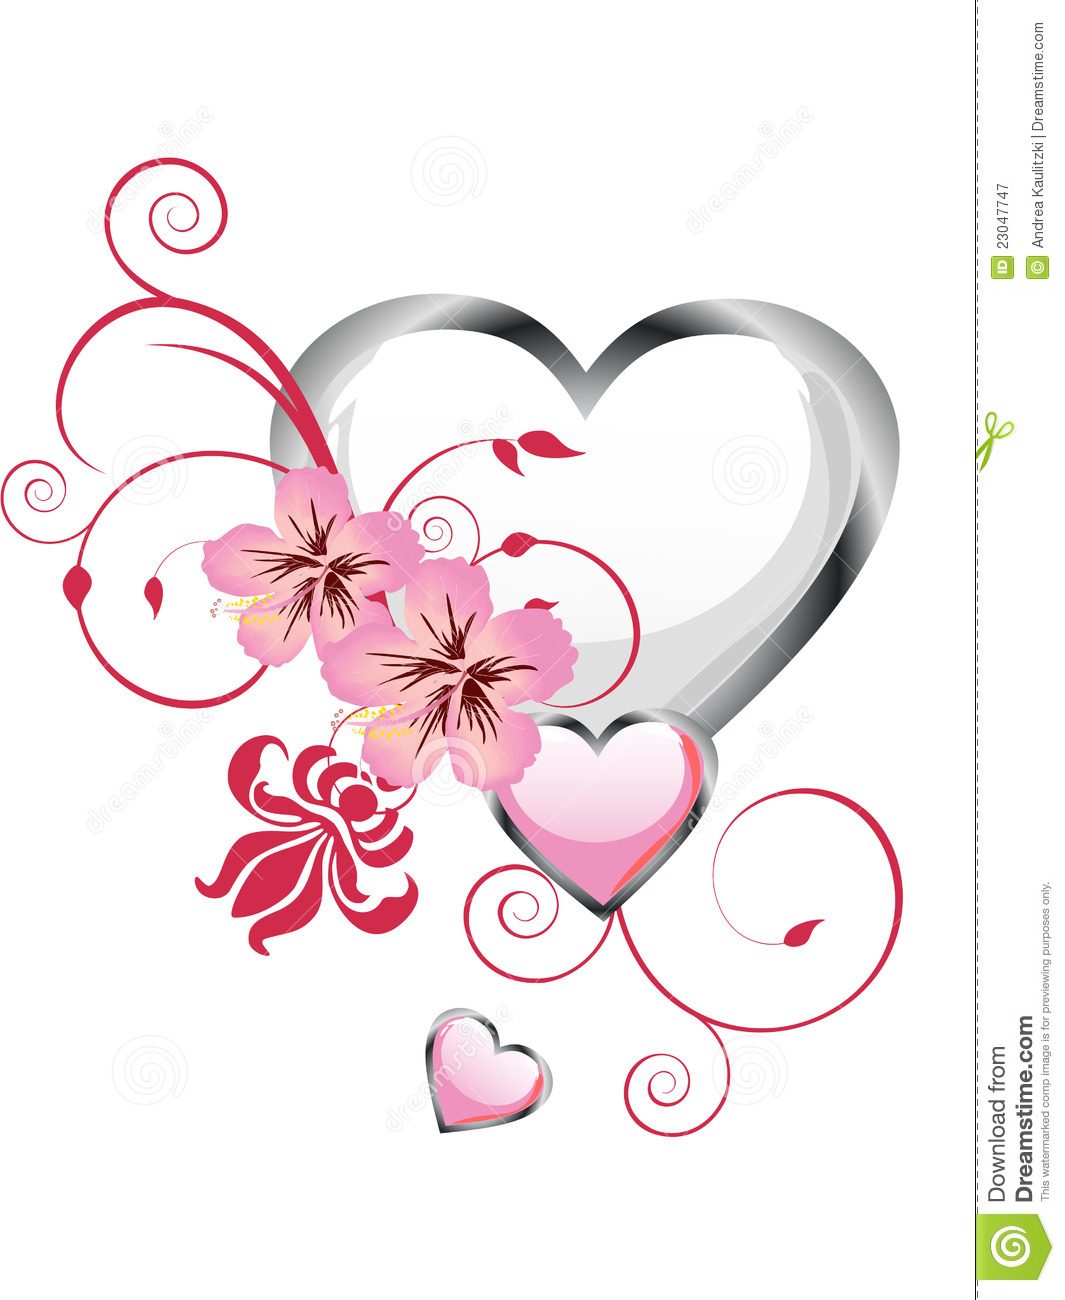 Floral heart design royalty free stock photography image for Heartbeat design